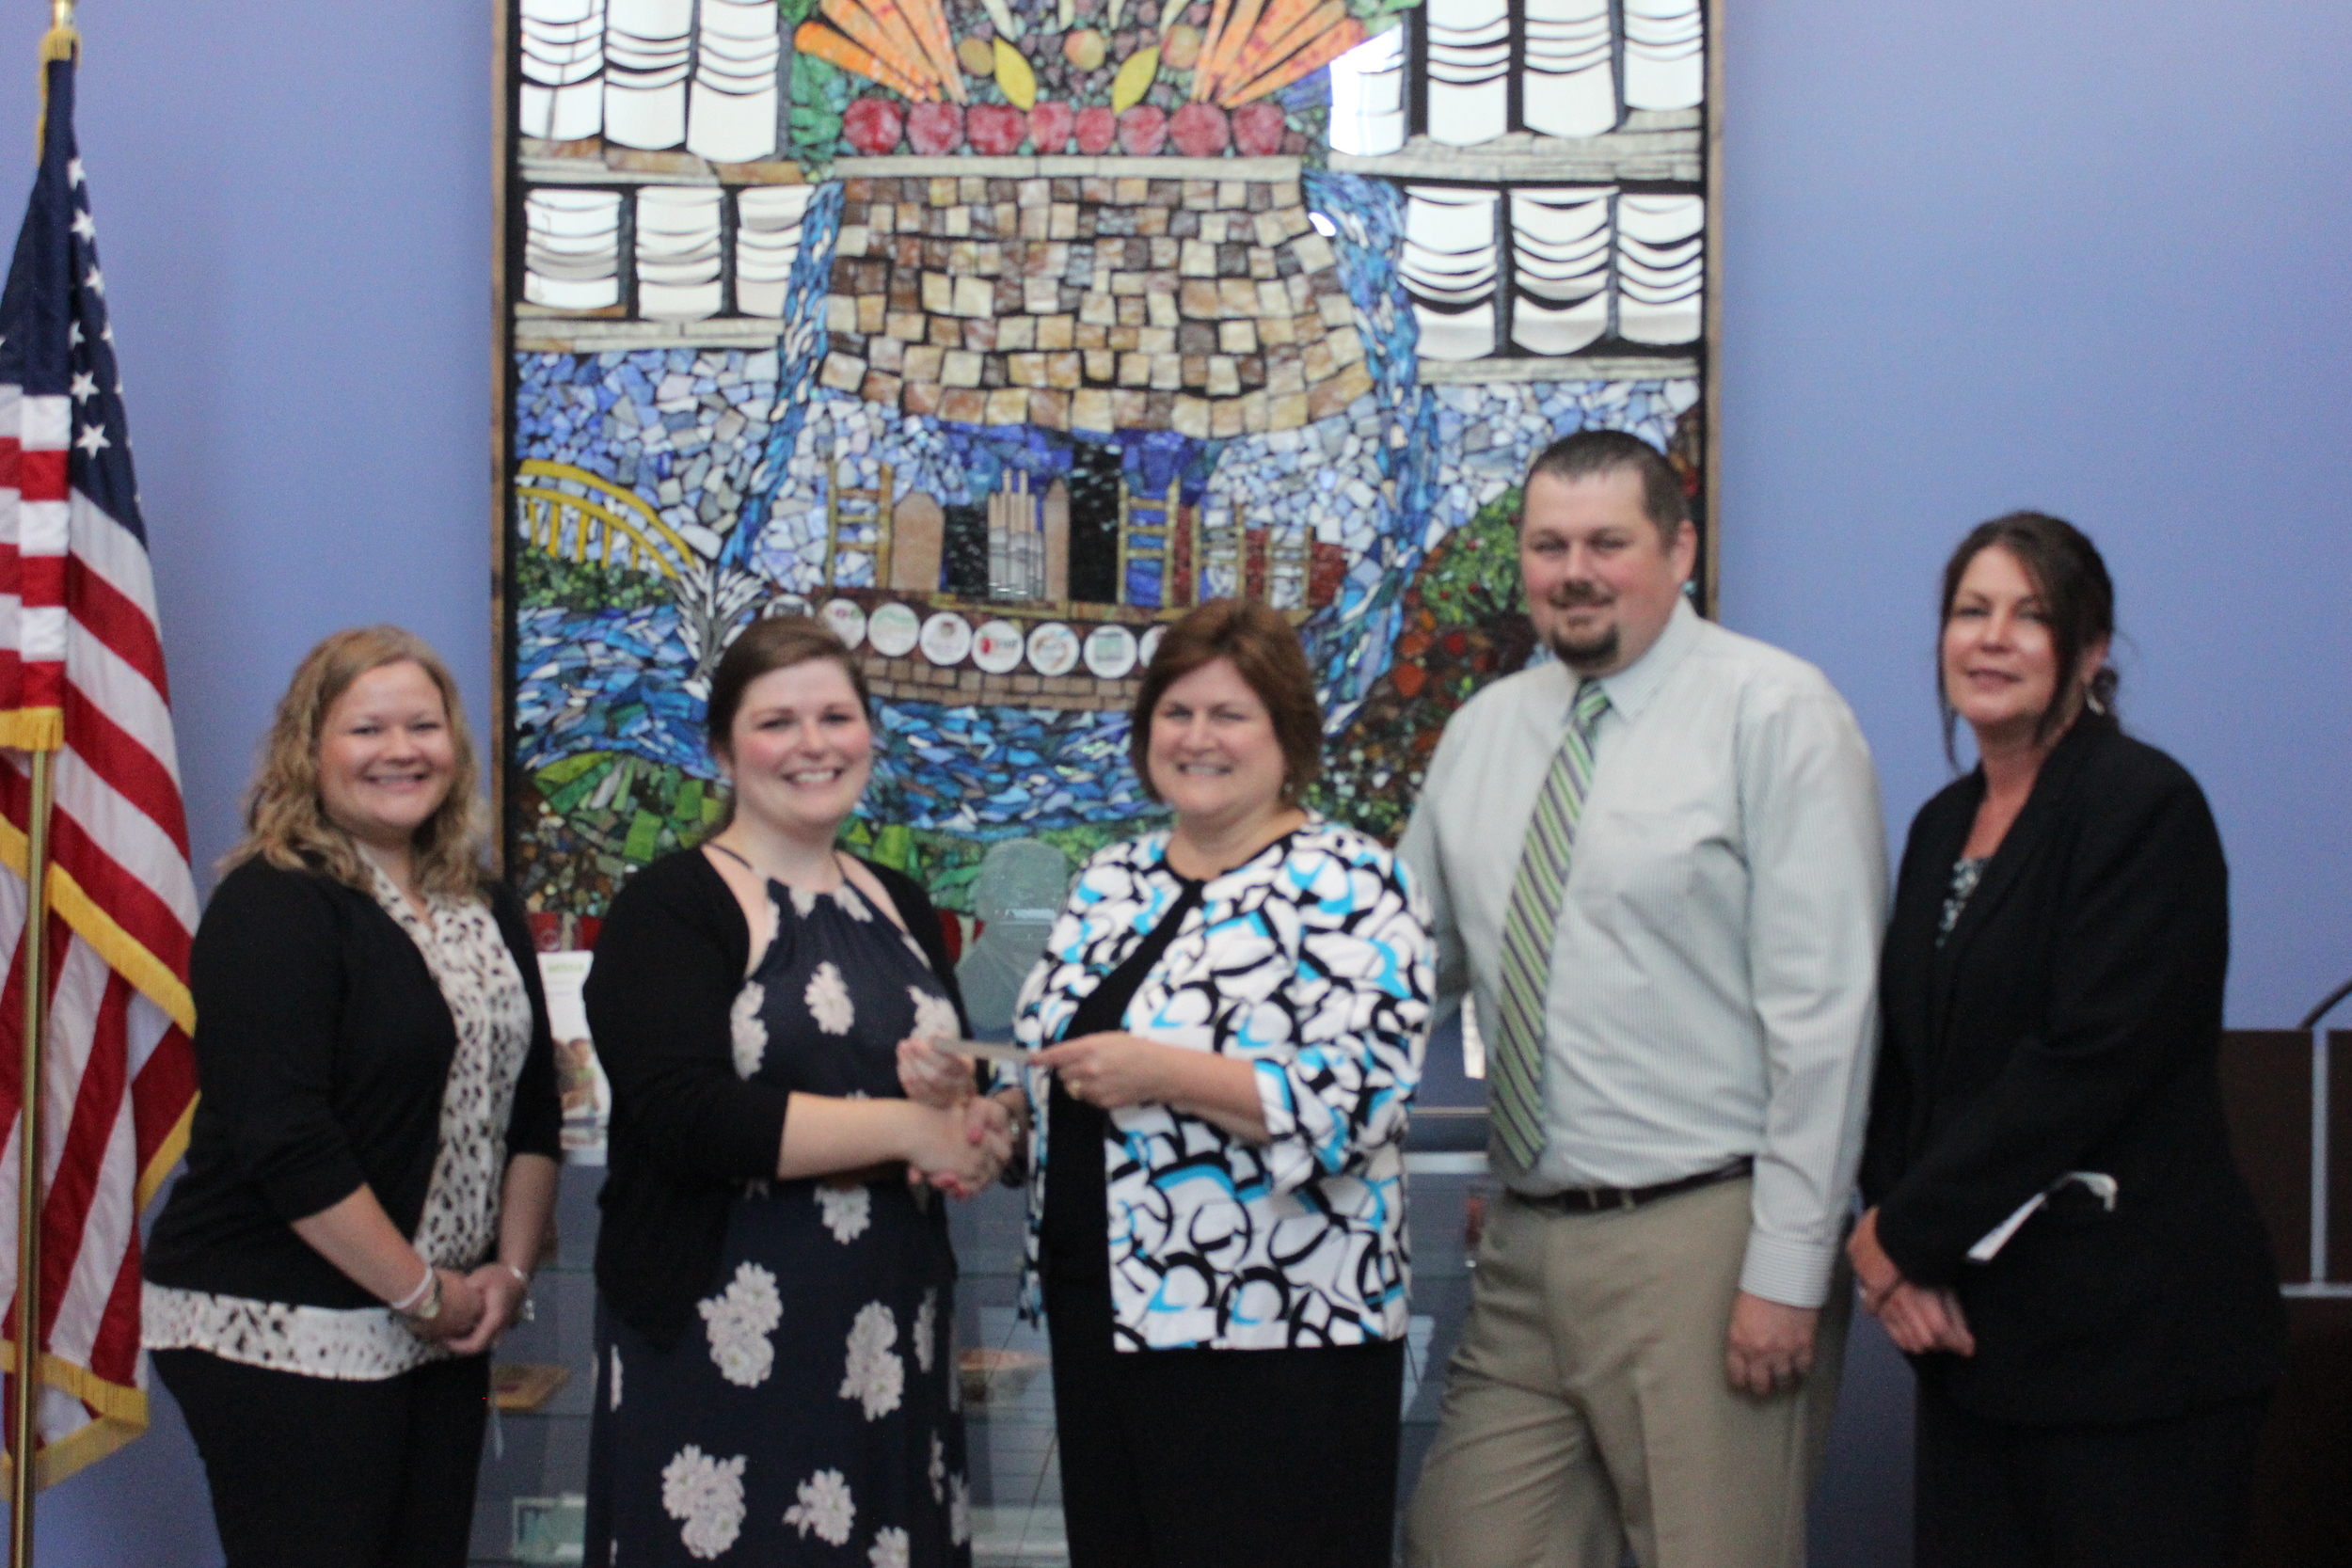 From left to right: Cranberry Township Branch Manager Danielle Little, Community Engagement and Volunteer Coordinator Beci Russell (from the Greater Pittsburgh Community Food Bank), Area Vice President of the Western Pennsylvania Region Lauran King, Monroeville Branch Manager Greg Brown, and Butler Branch Manager Bobbie Young.